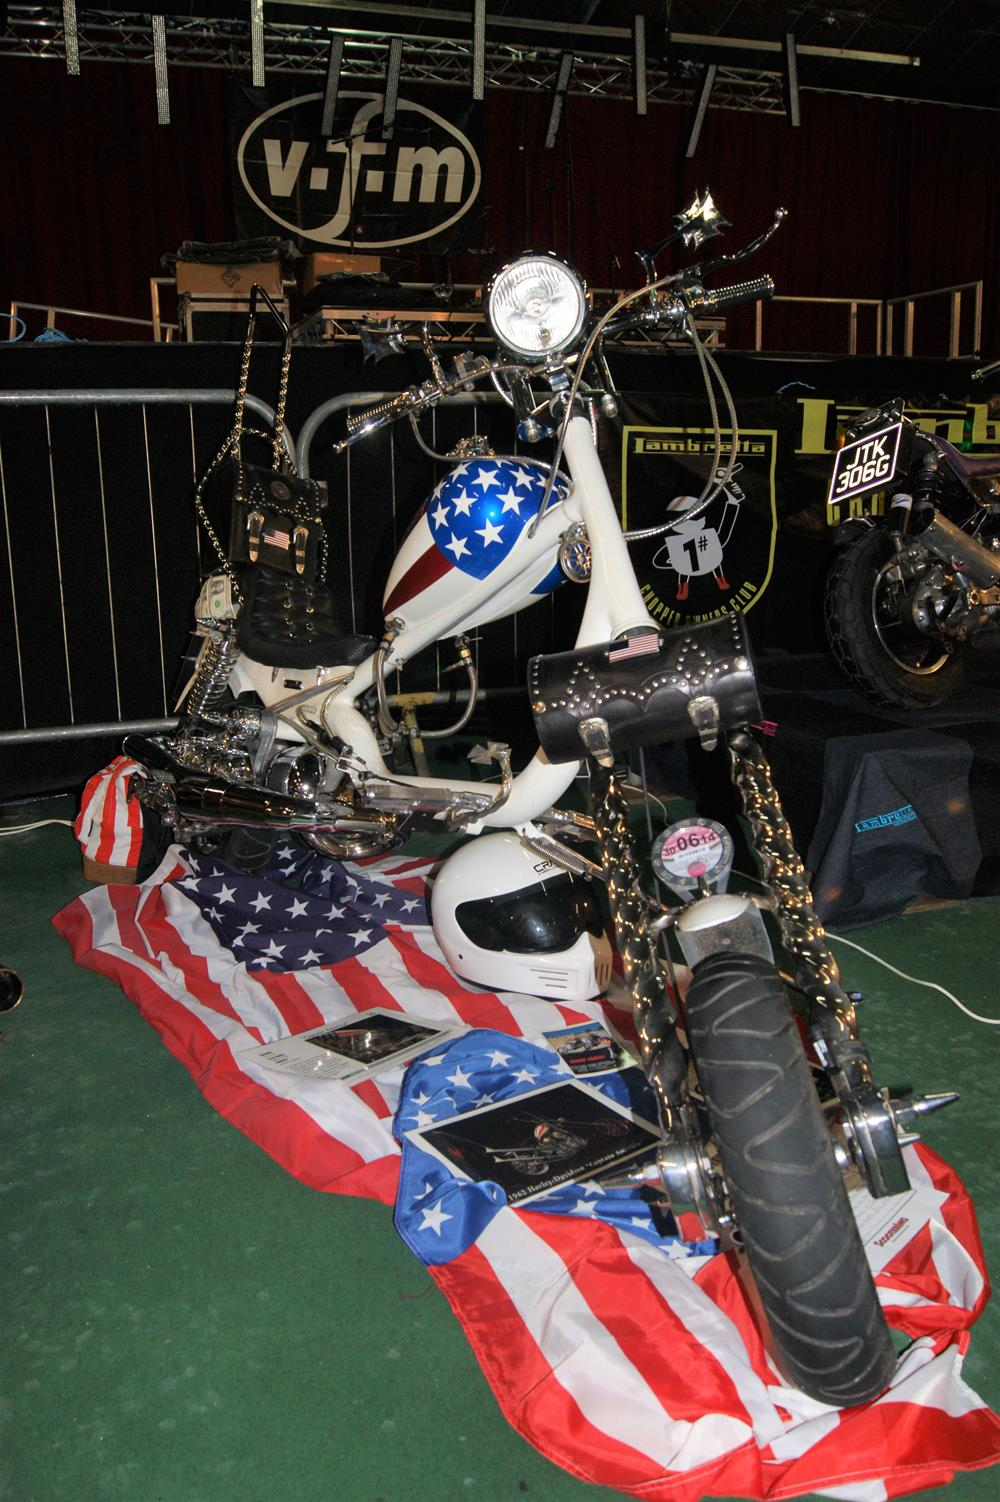 USA themed Lambretta chopper on display at the Isle of Wight scooter rally custom show